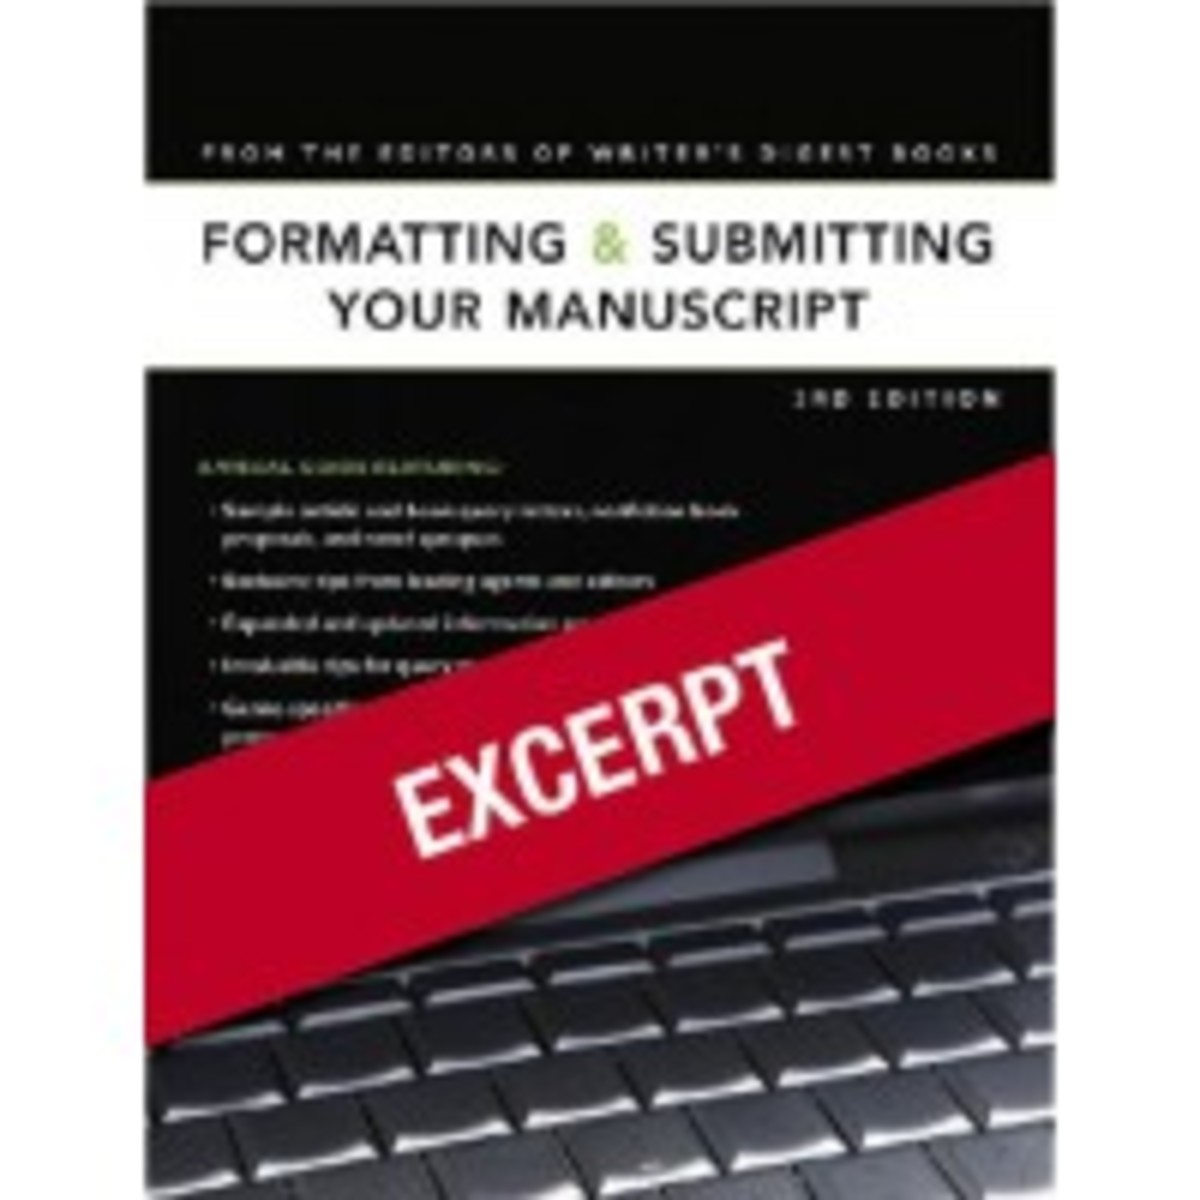 TV Scripts - Formatting & Submitting Your Manuscript eBook Excerpt